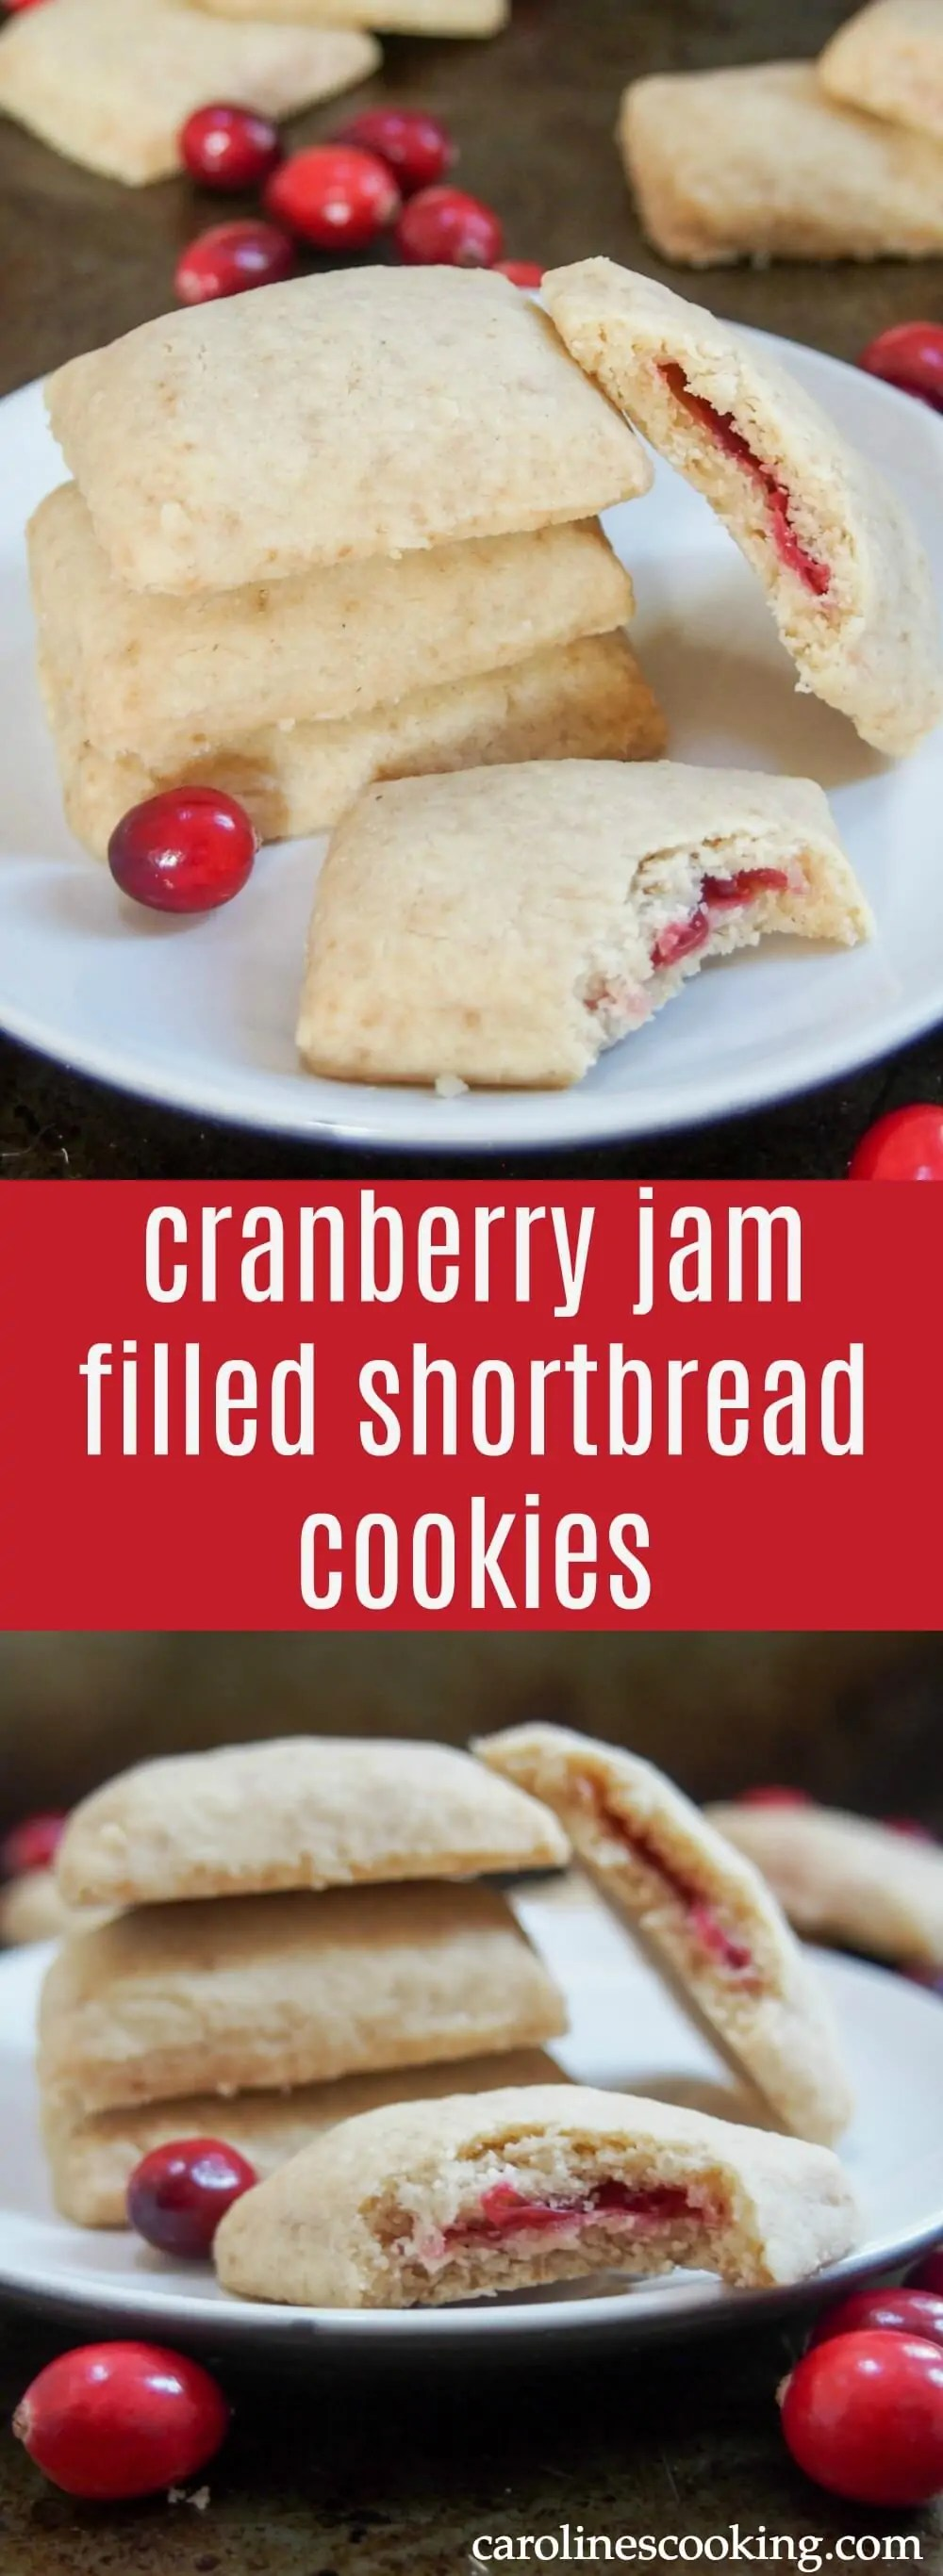 These cranberry jam filled shortbread cookies take a traditional recipe up a step - melt in your mouth cookies with a delicious sweet filling. So good.